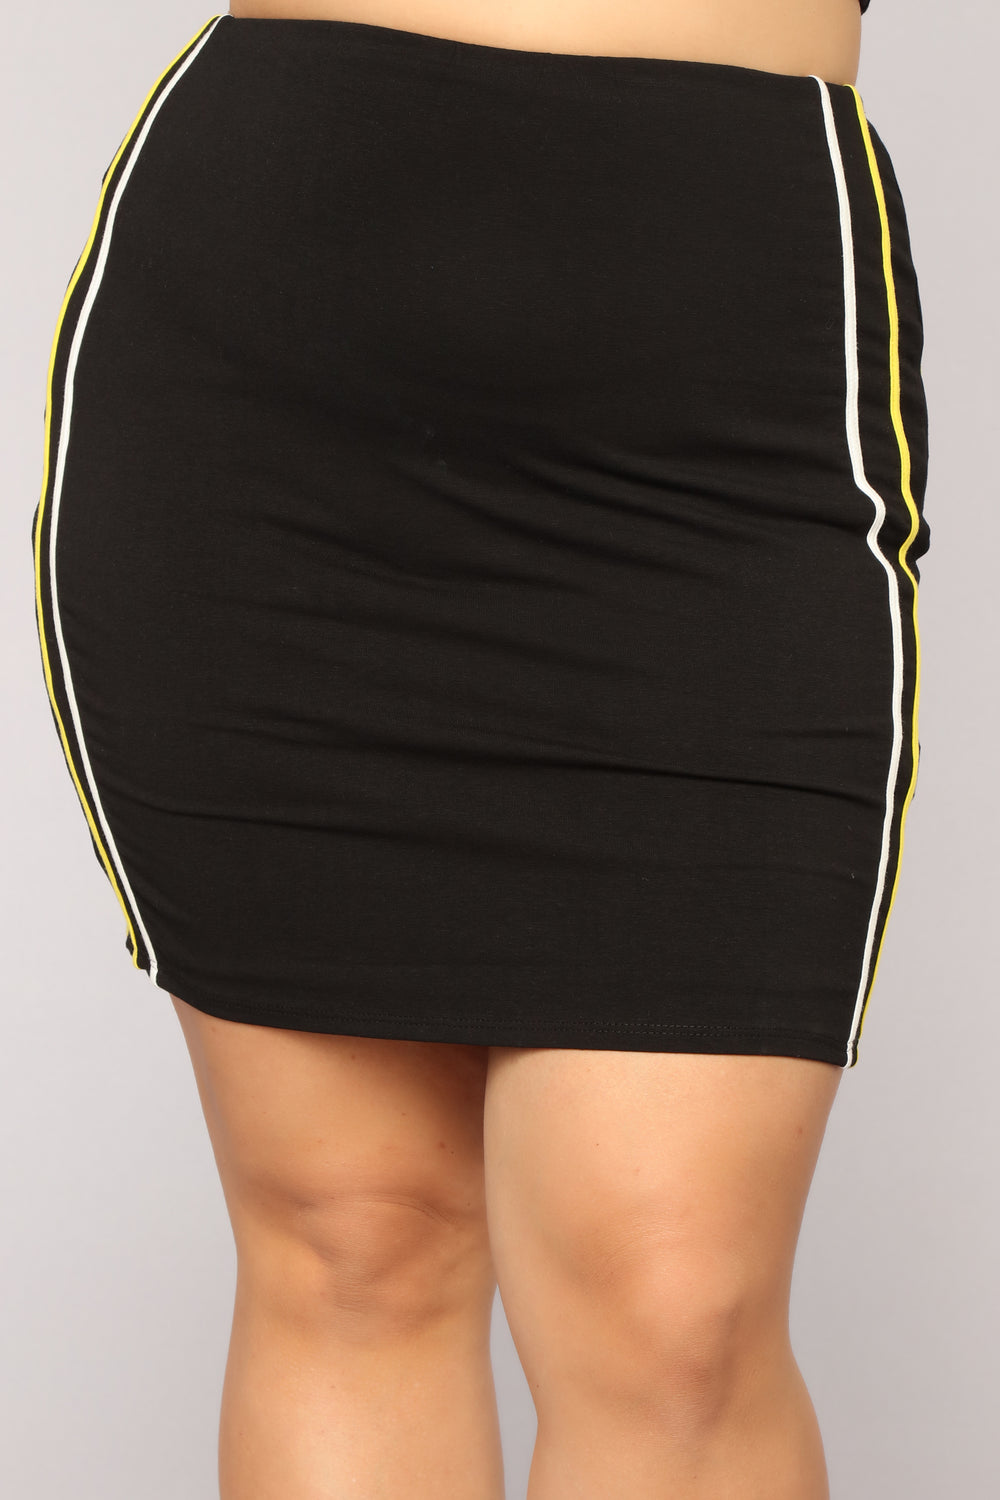 Fastest Move Stripe Skirt - Black